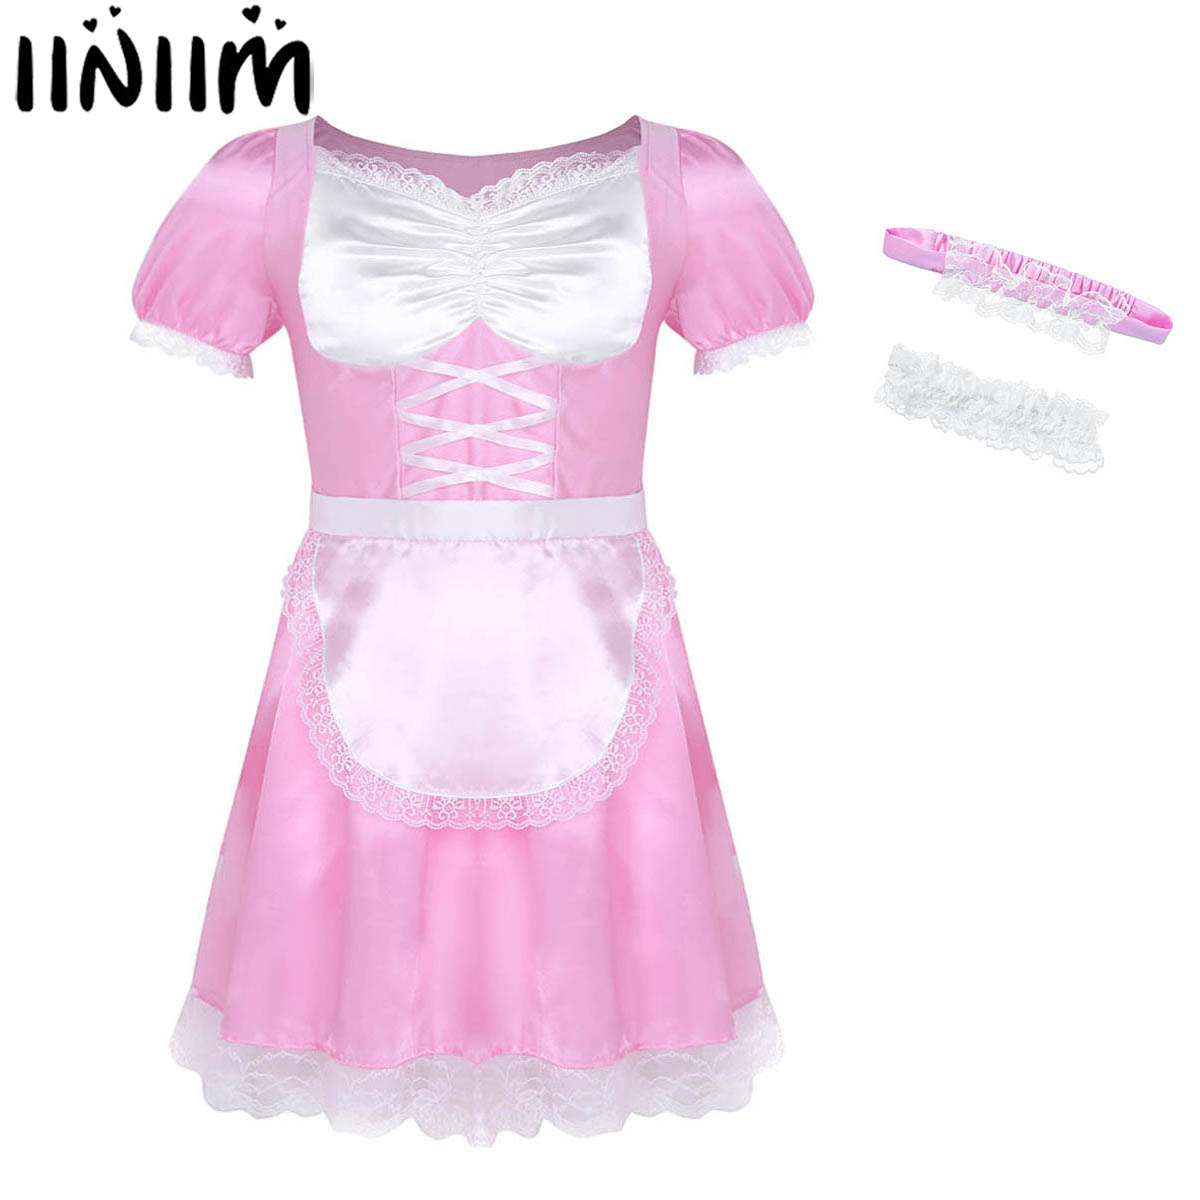 TV,SISSY LOLITA FRILLY COSPLAY ADULT BABY SATIN DELUX RUFFLE KNICKERS